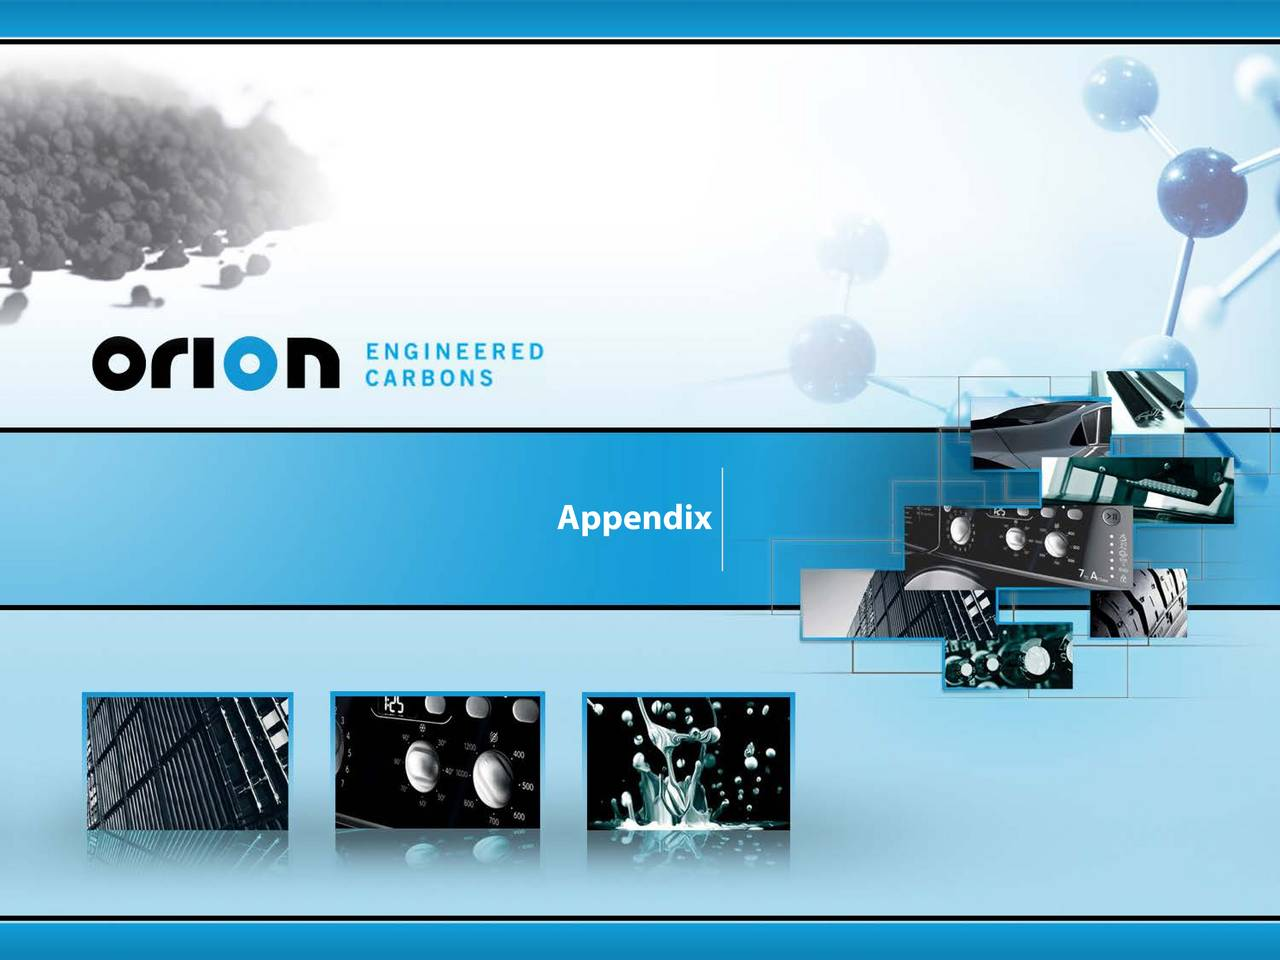 Orion engineered carbons ipo price